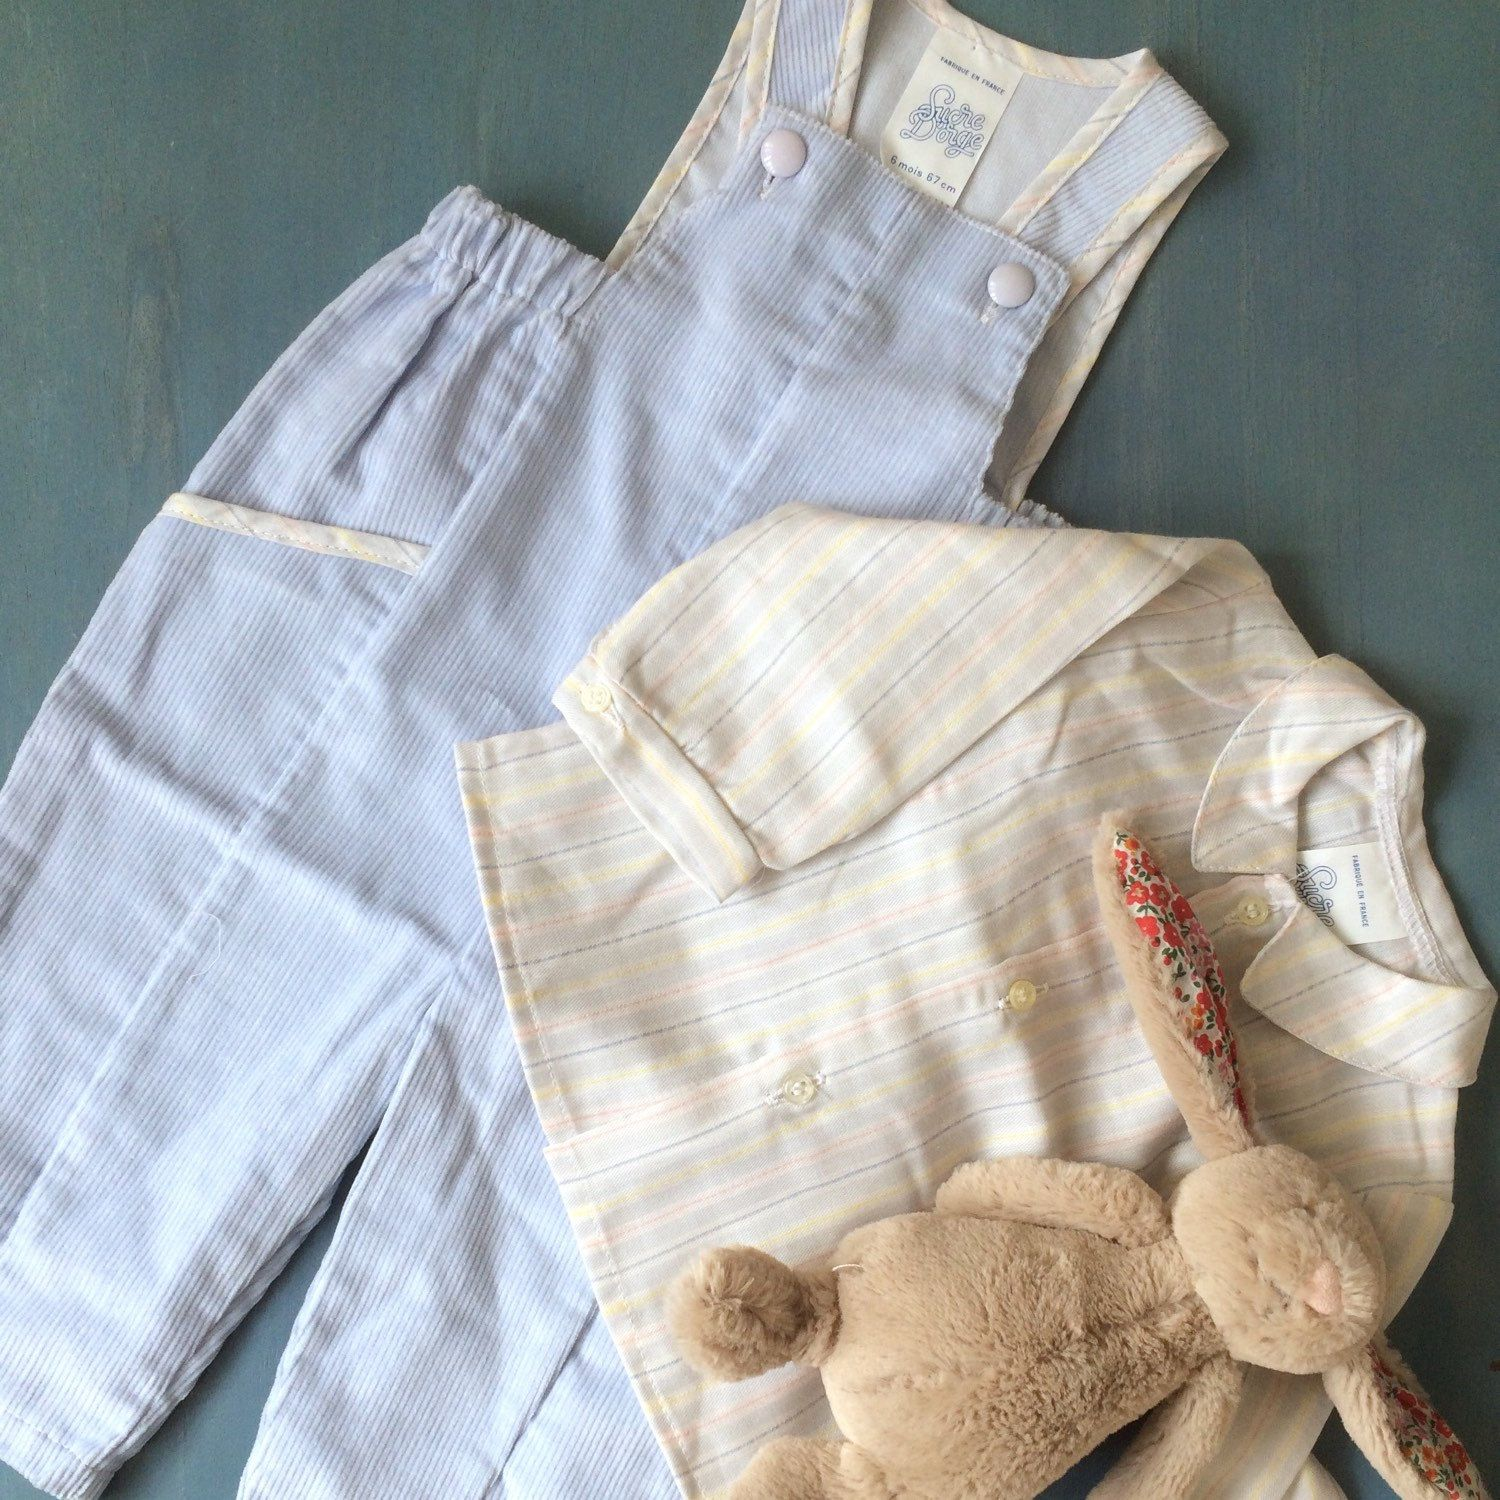 No style mix today This vintage baby boy outfit listed yesterday is